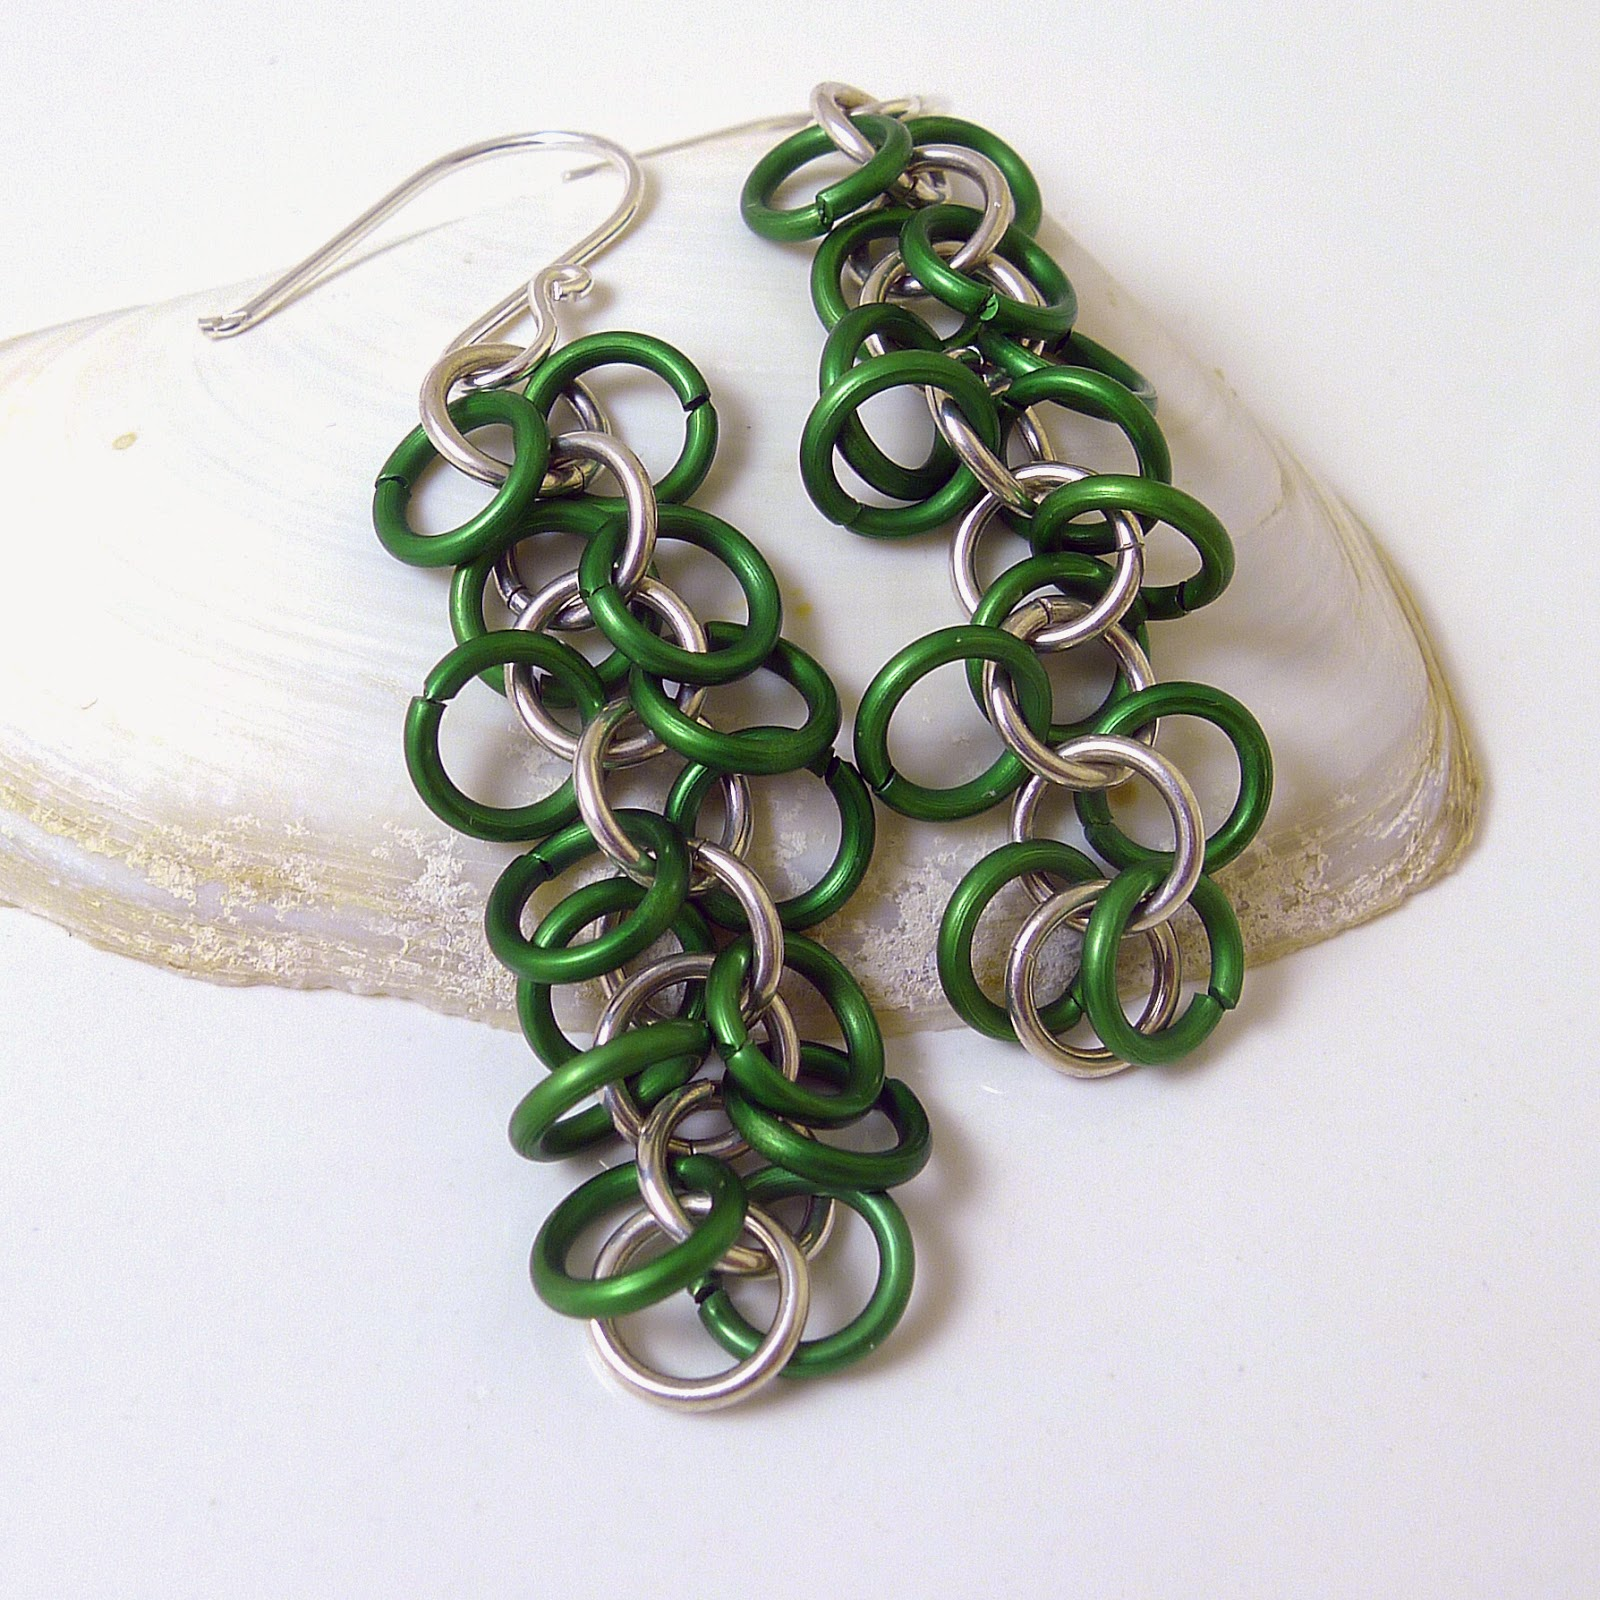 https://www.etsy.com/nz/listing/184444957/sterling-silver-and-green-aluminium